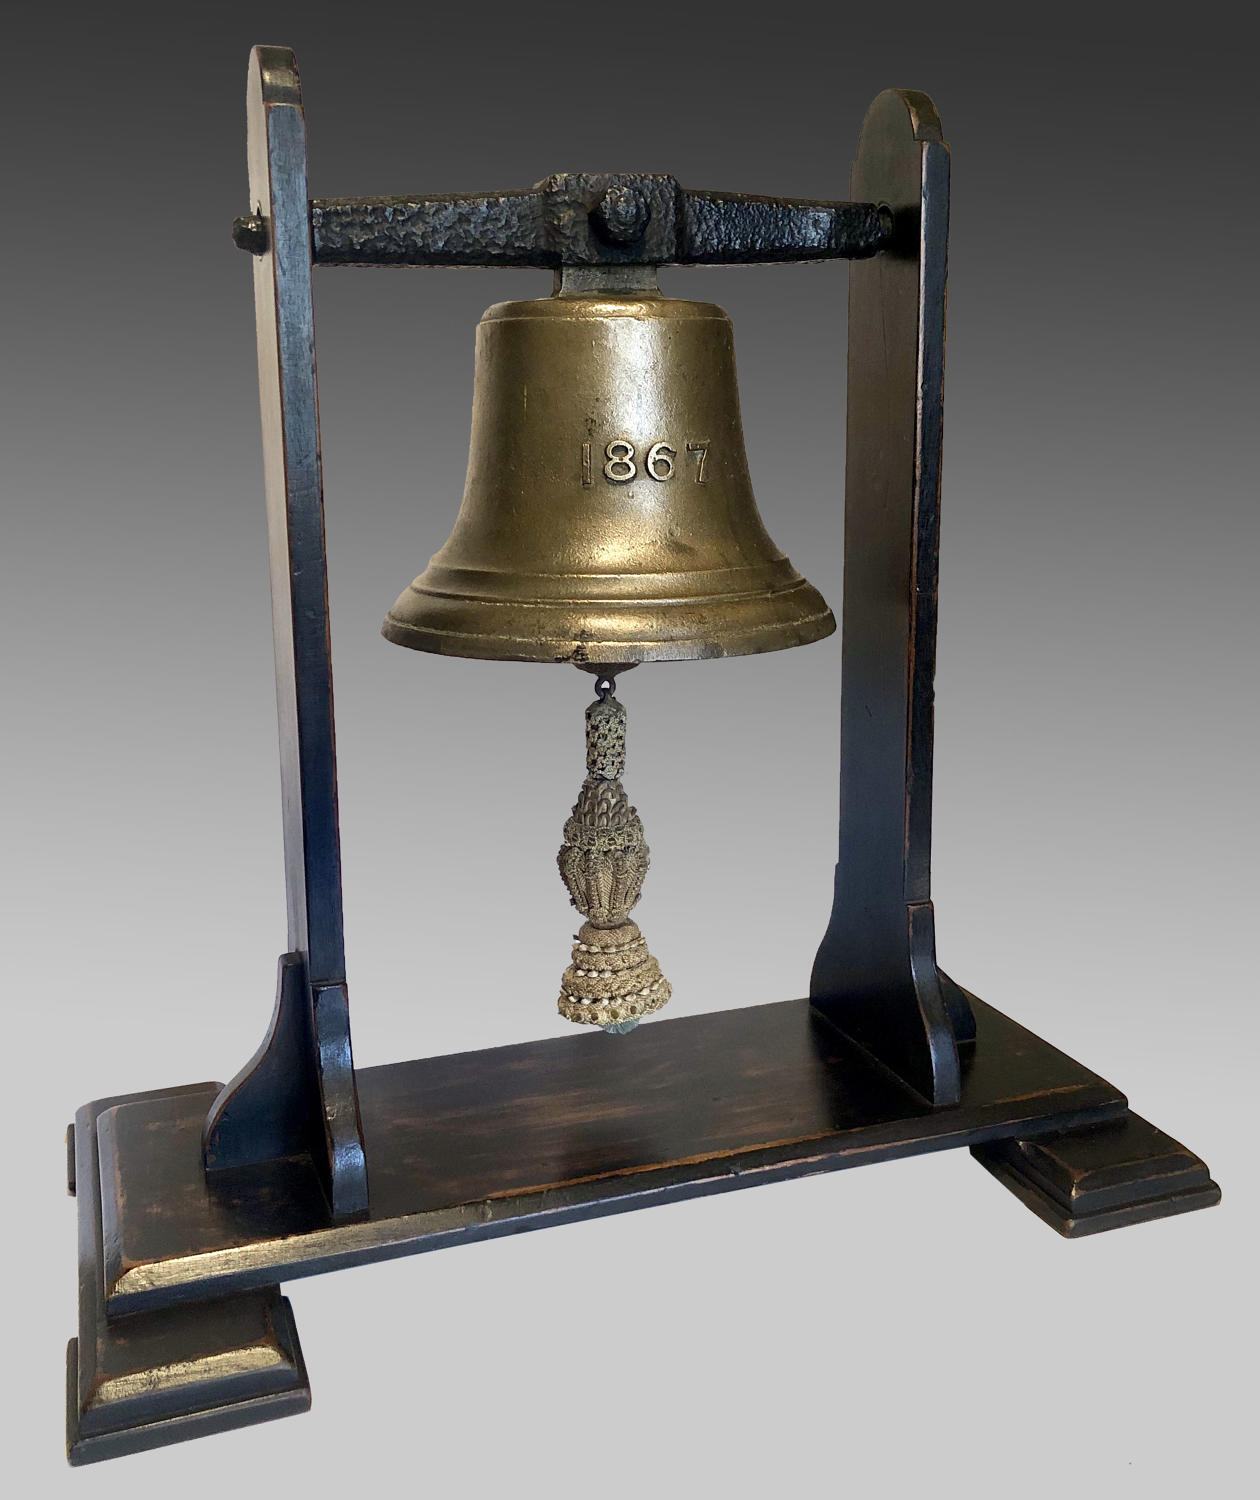 19th century cast bronze bell